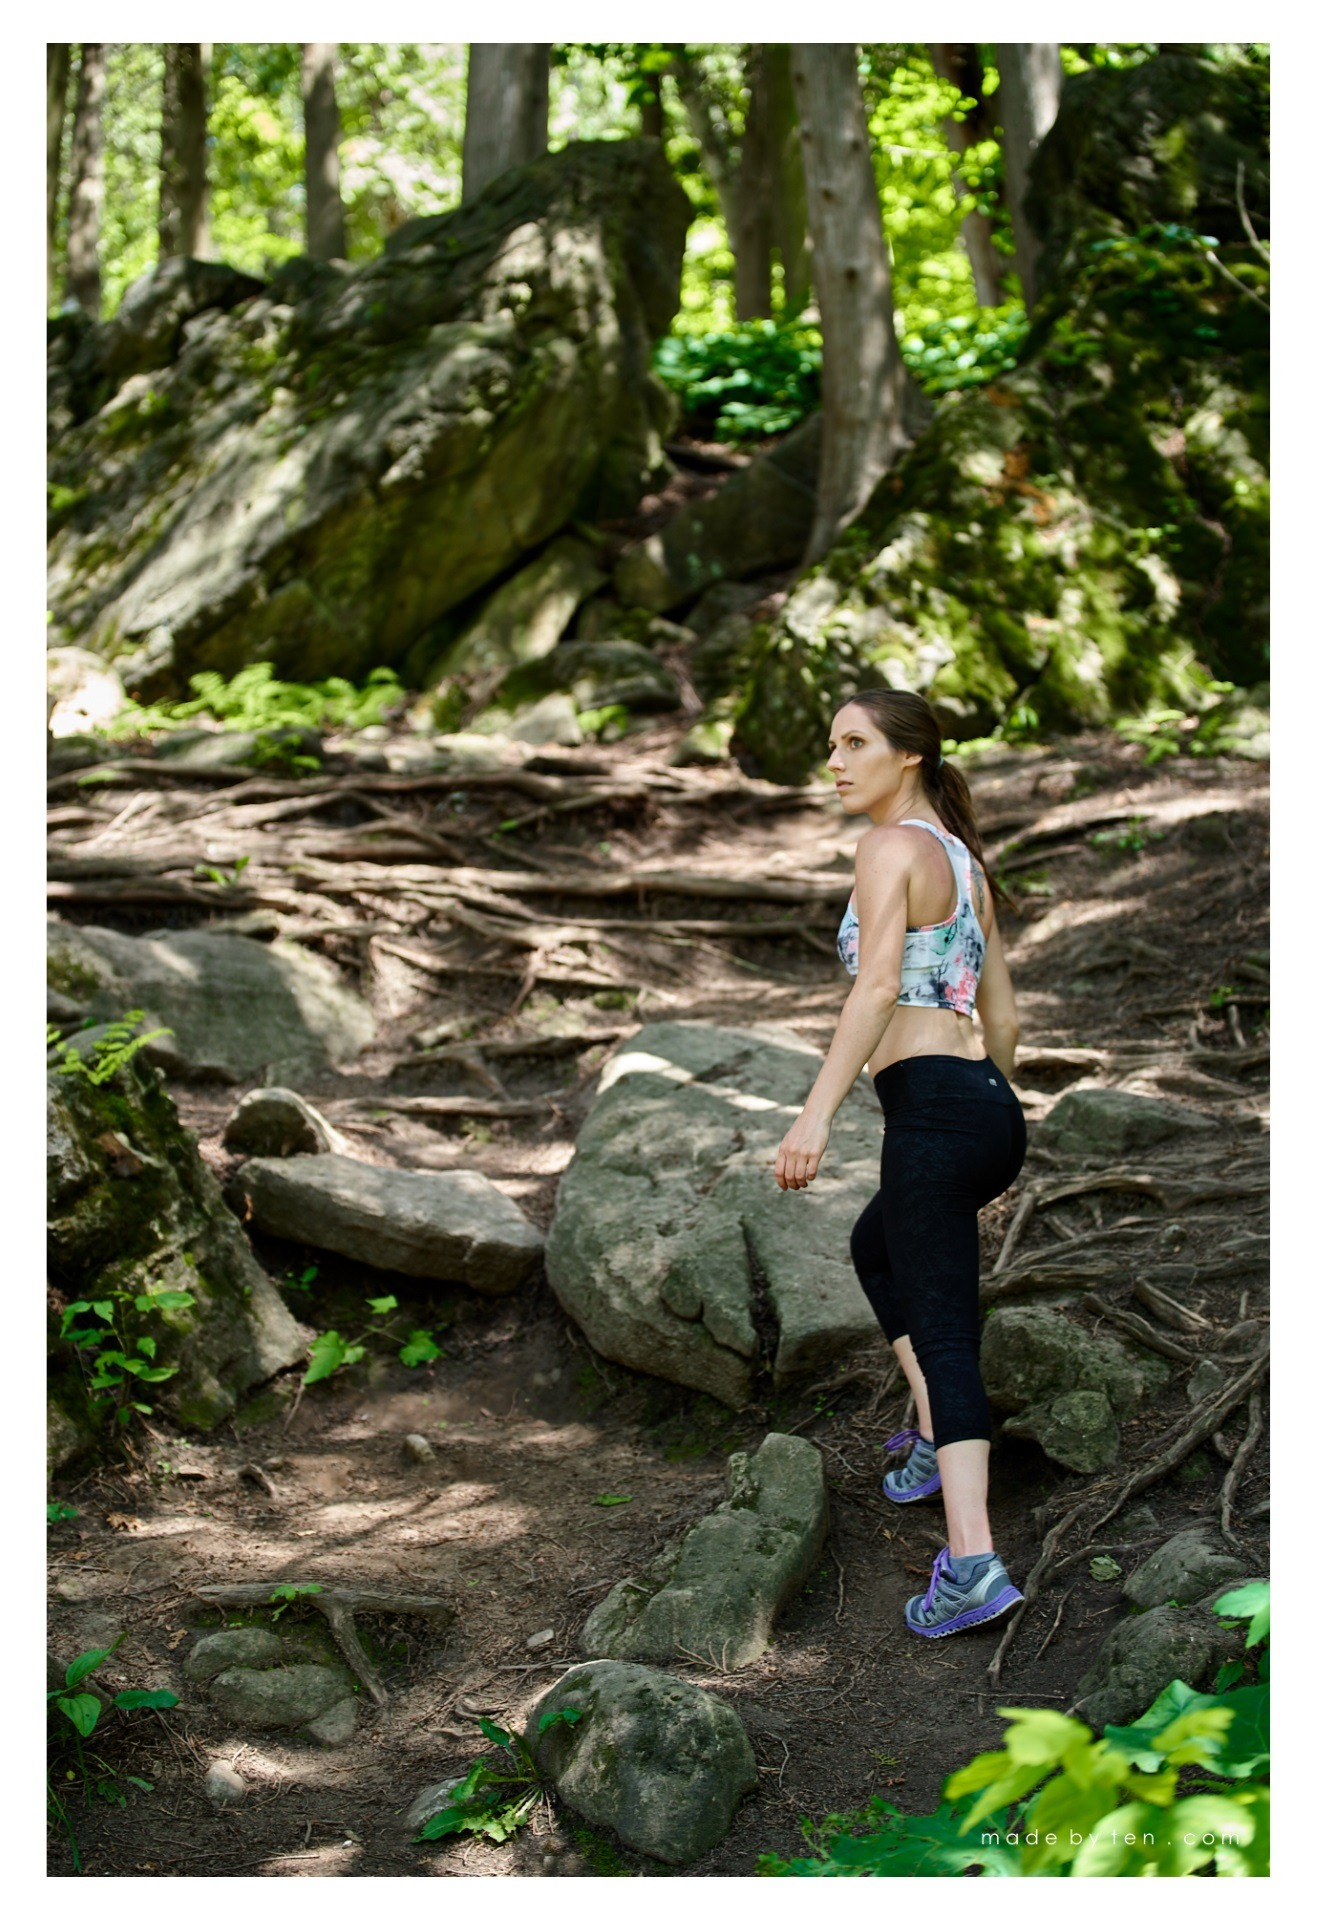 Themed Photoshoot Inspiration Outdoor Fitness And Hiking Made By Ten